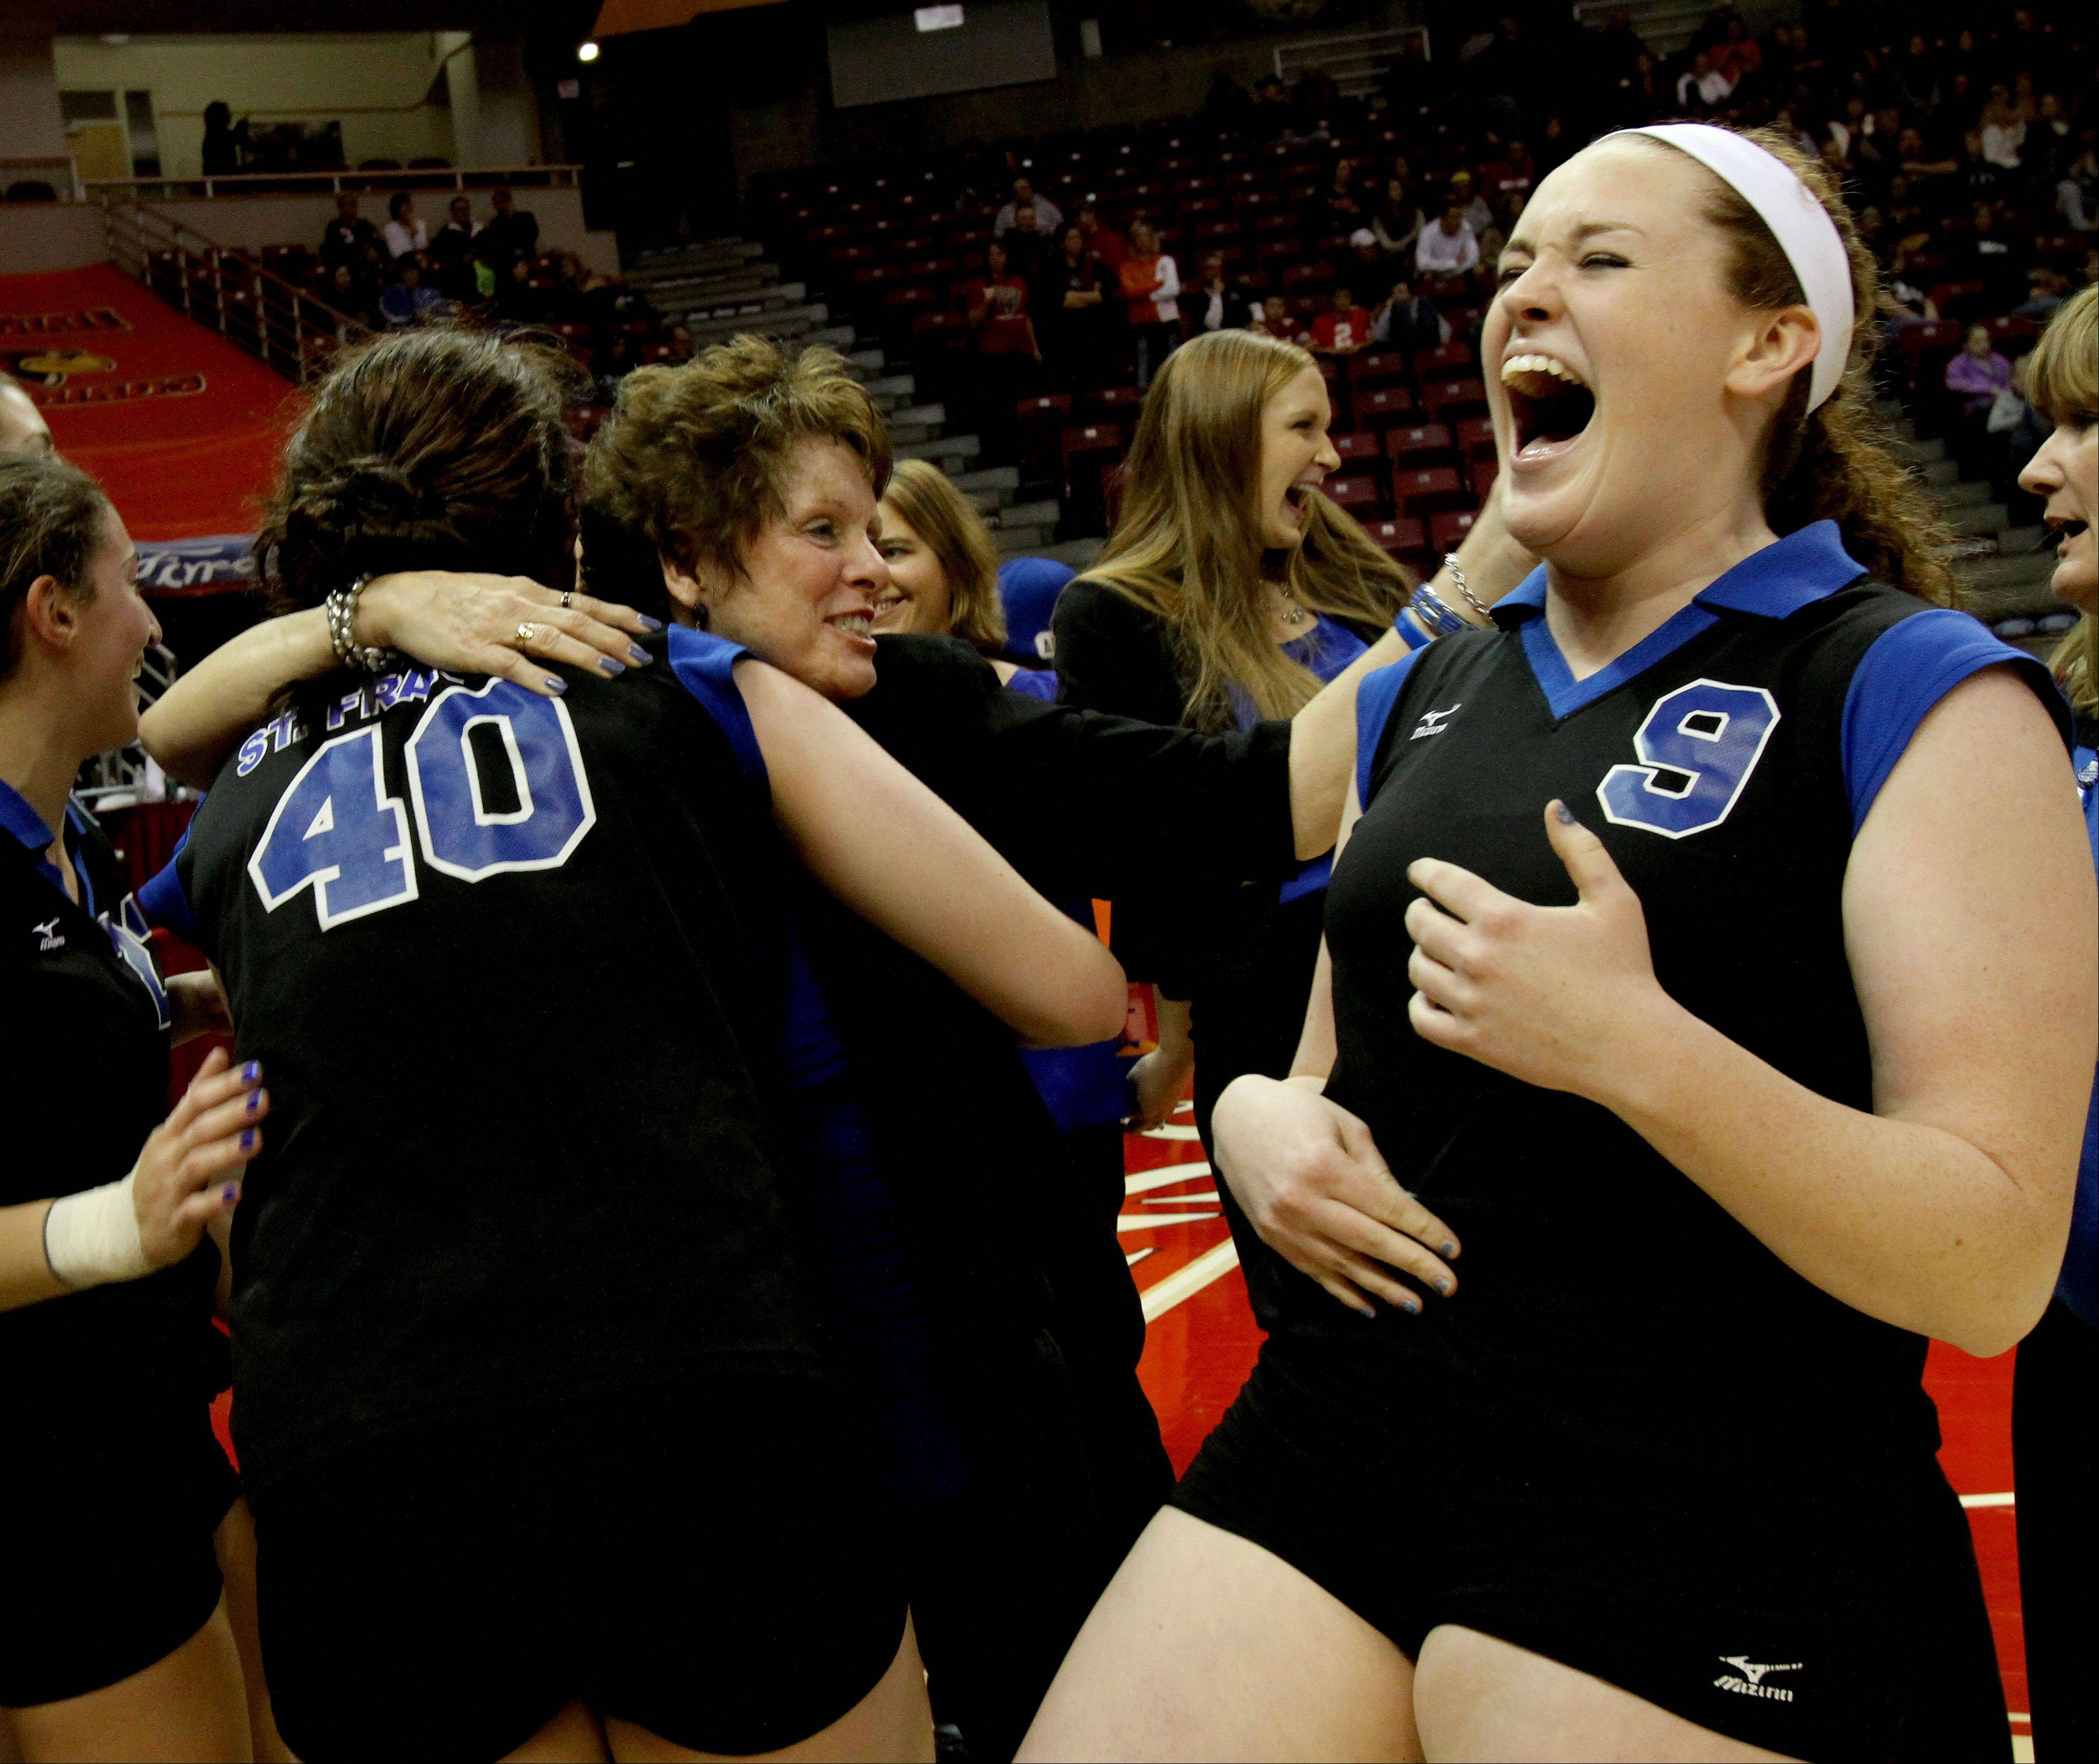 St. Francis coach Peg Kopec, center, hugs her players as Sarah Muisenga, right, celebrates after the Spartans beat LaSalle-Peru in two games for the Class 3A championship in girls volleyball on Saturday in Normal.